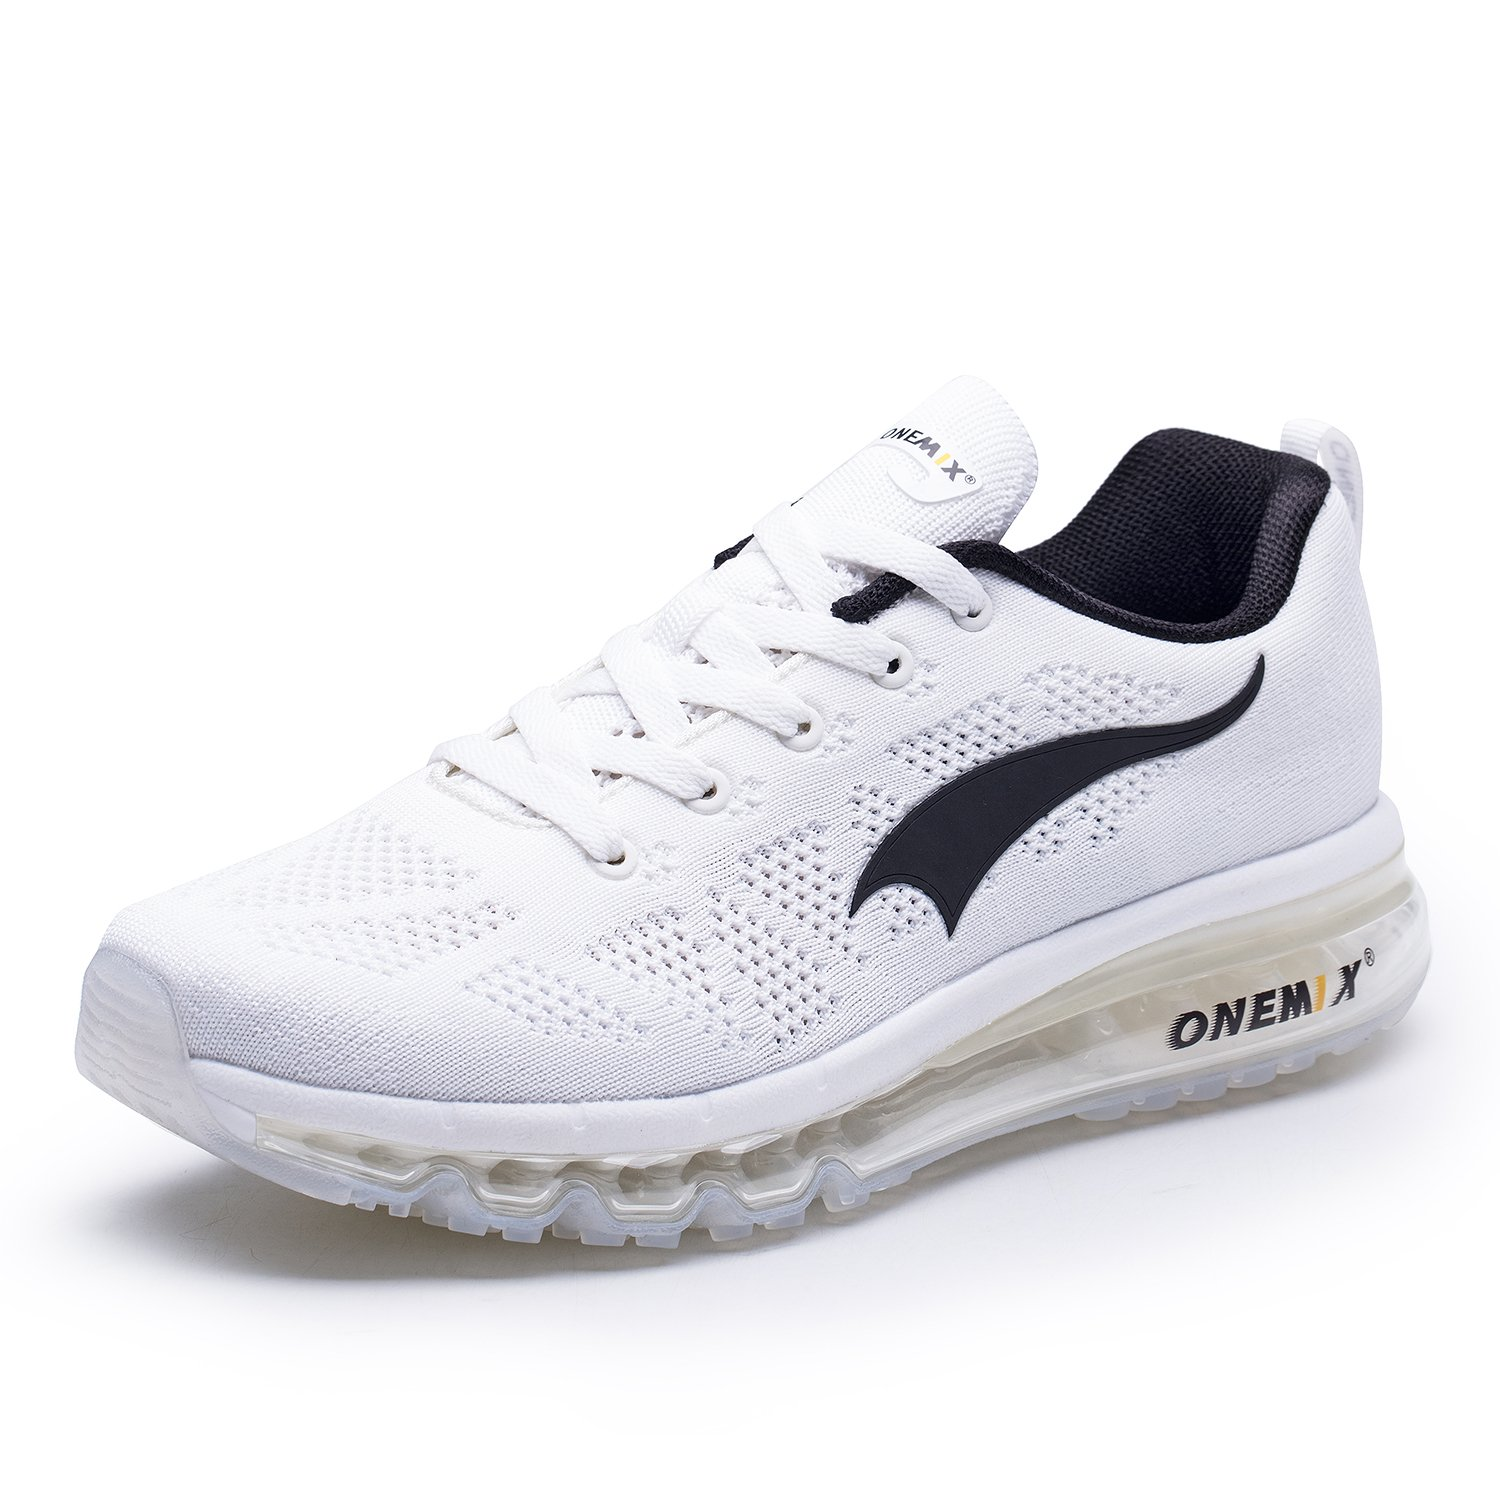 ONEMIX Men's Air Cushion Outdoor Sport Running Shoes Casual Sneakers White Black 8 US 1118B BH41